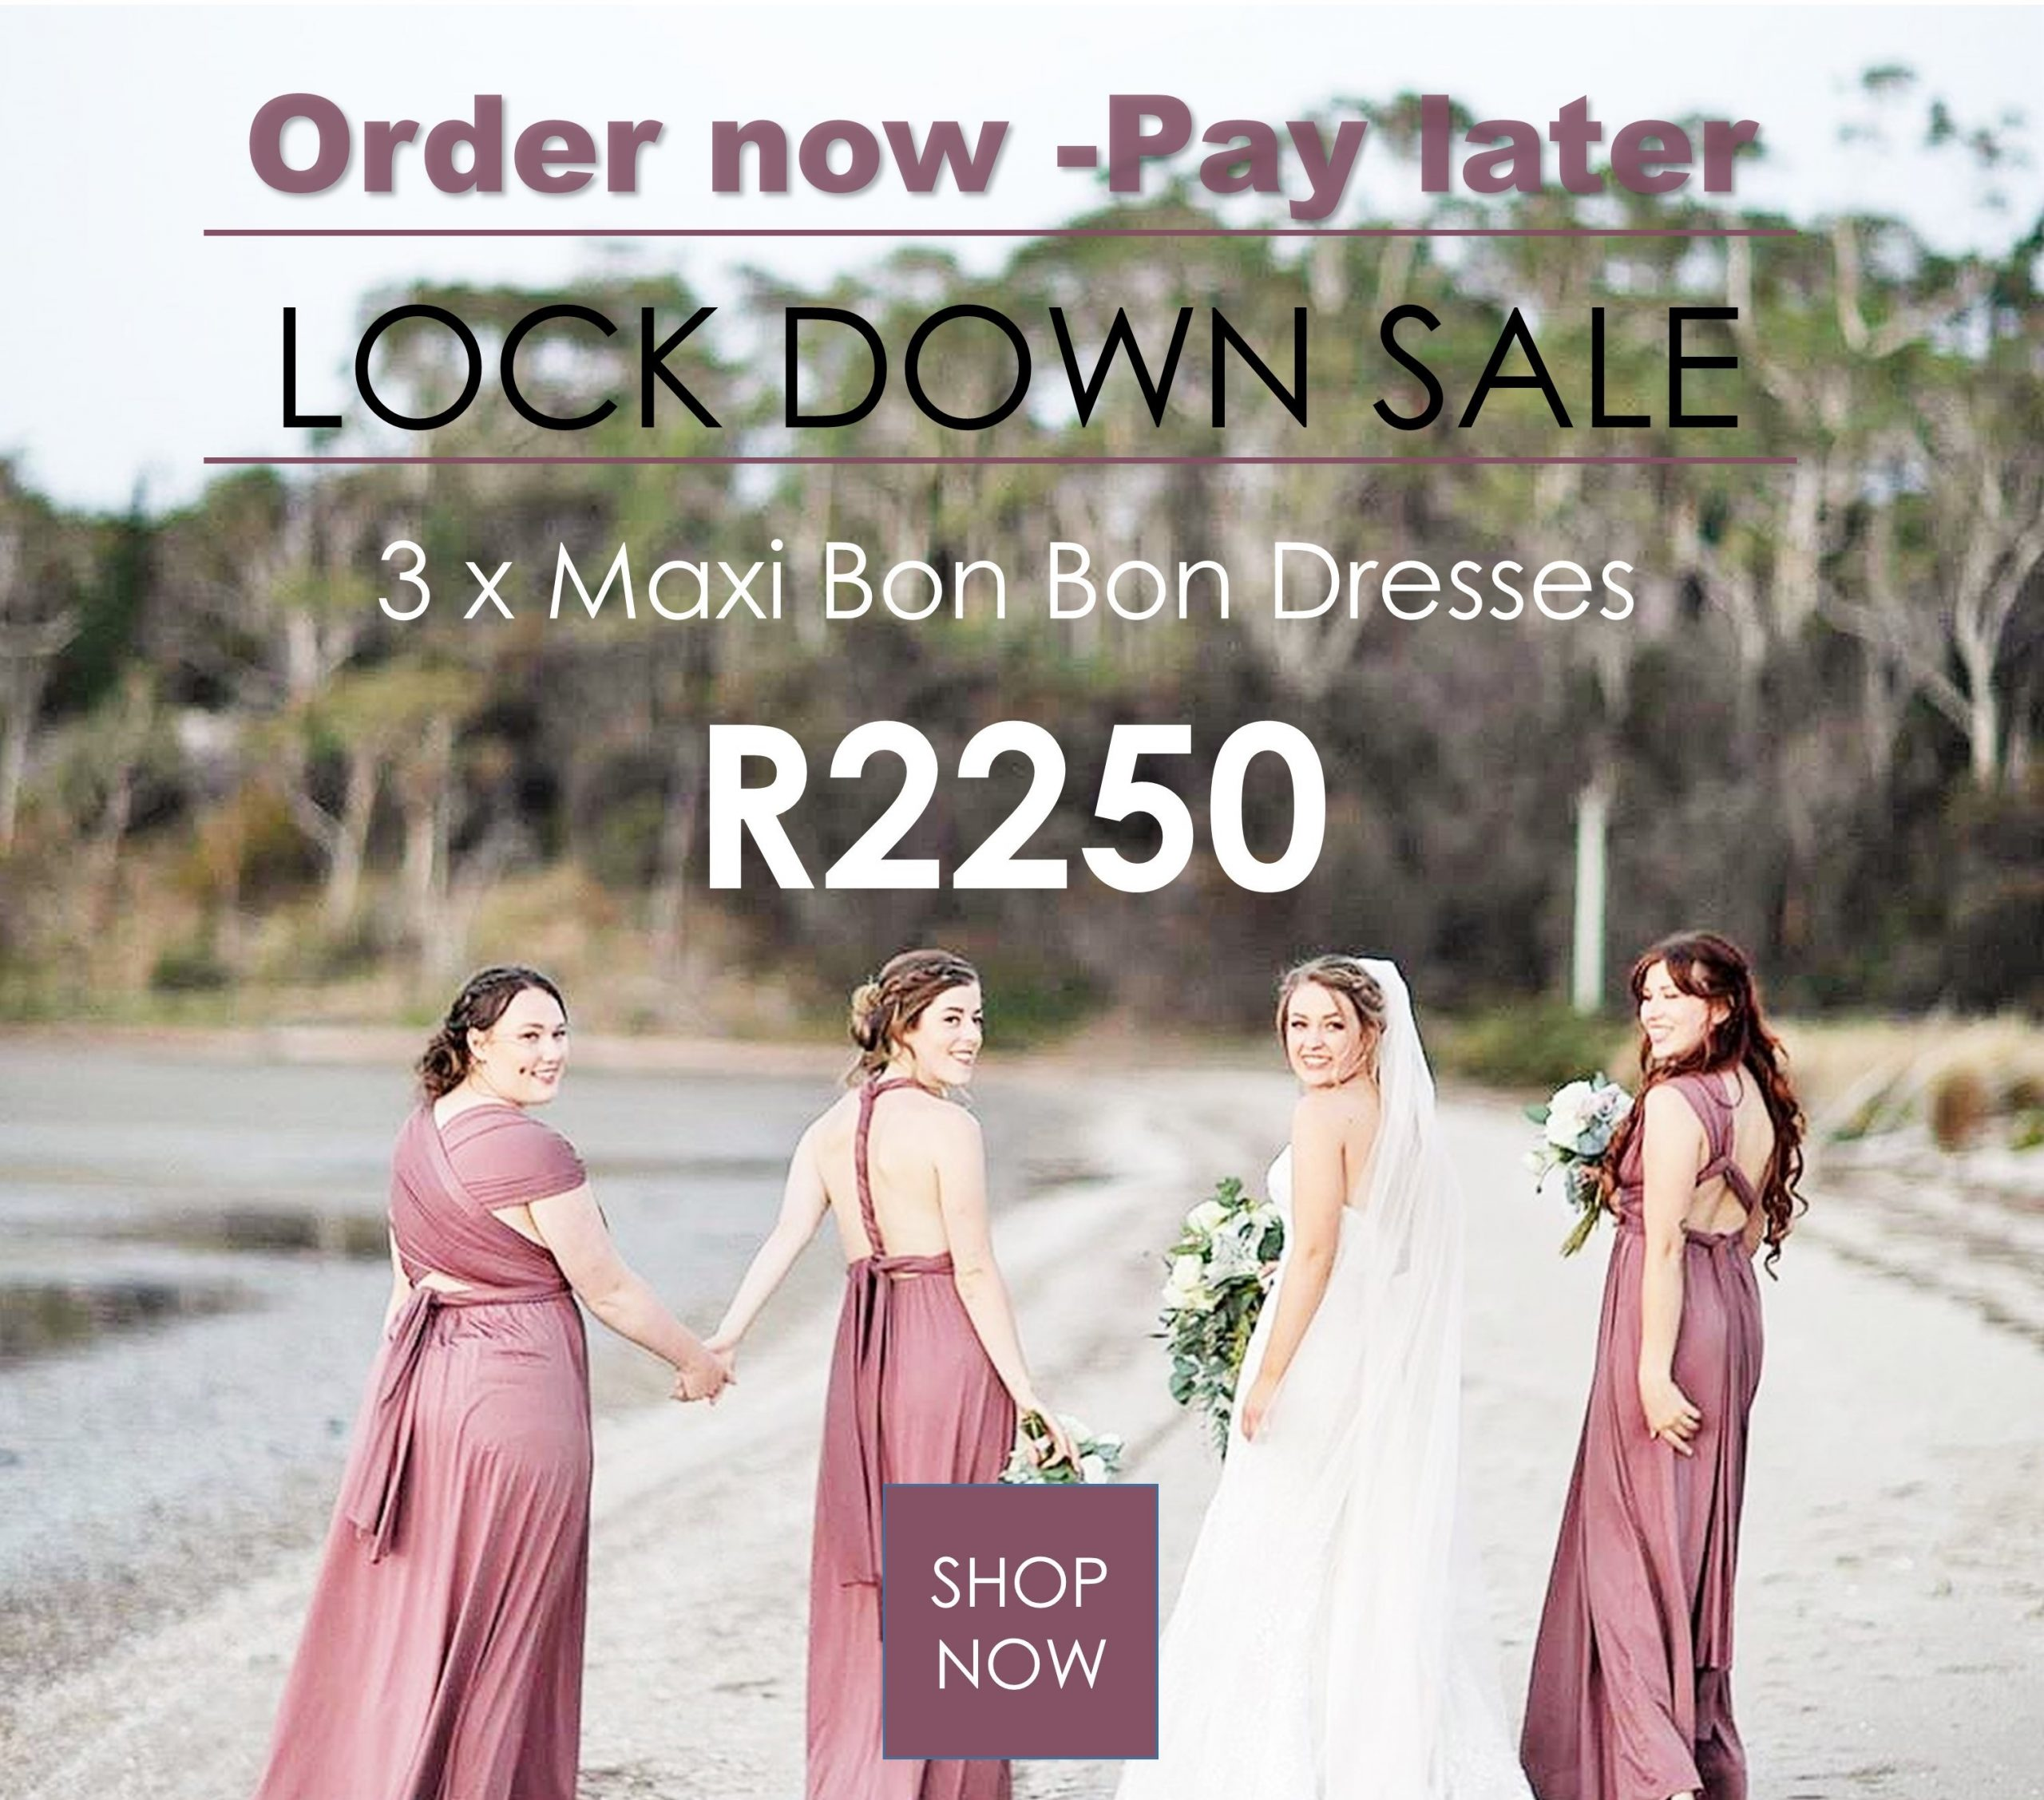 LOCK DOWN SALE – Order now, Pay later